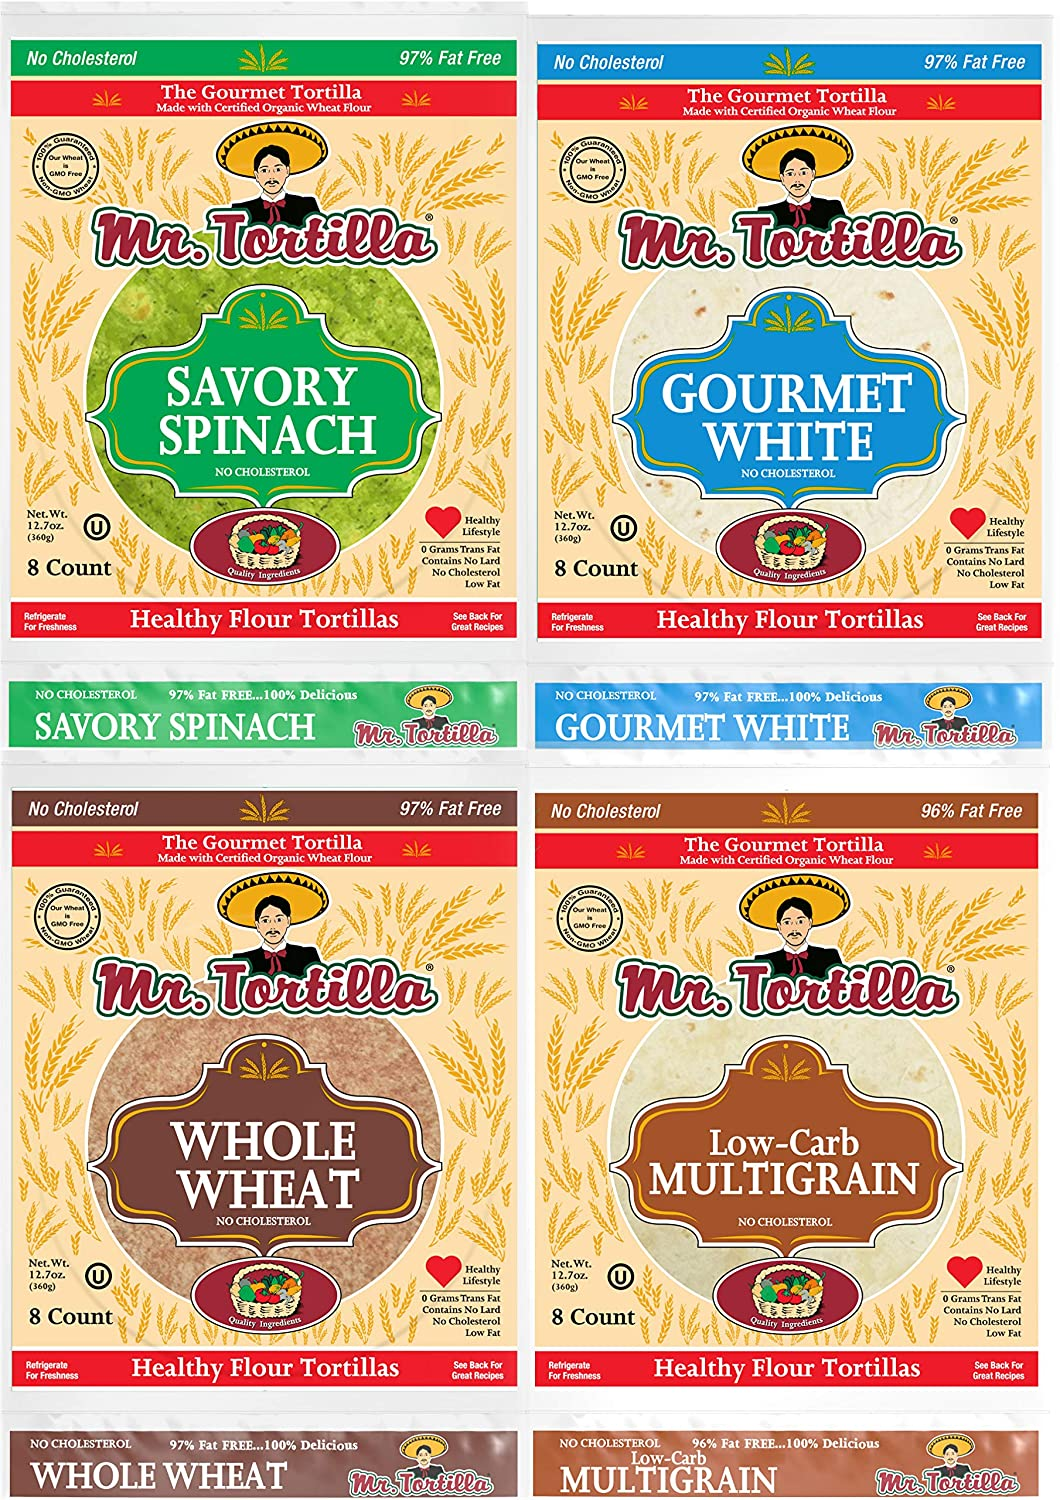 Mr. Tortilla Variety Pack - Fresh Organic Wheat Flour Tortillas - Healthy Zero Cholesterol Snack - Authentic Taste - Savory Spinach, Gourmet White, Whole Wheat, Low-Carb Multigrain - 8-Count, 4 Bags